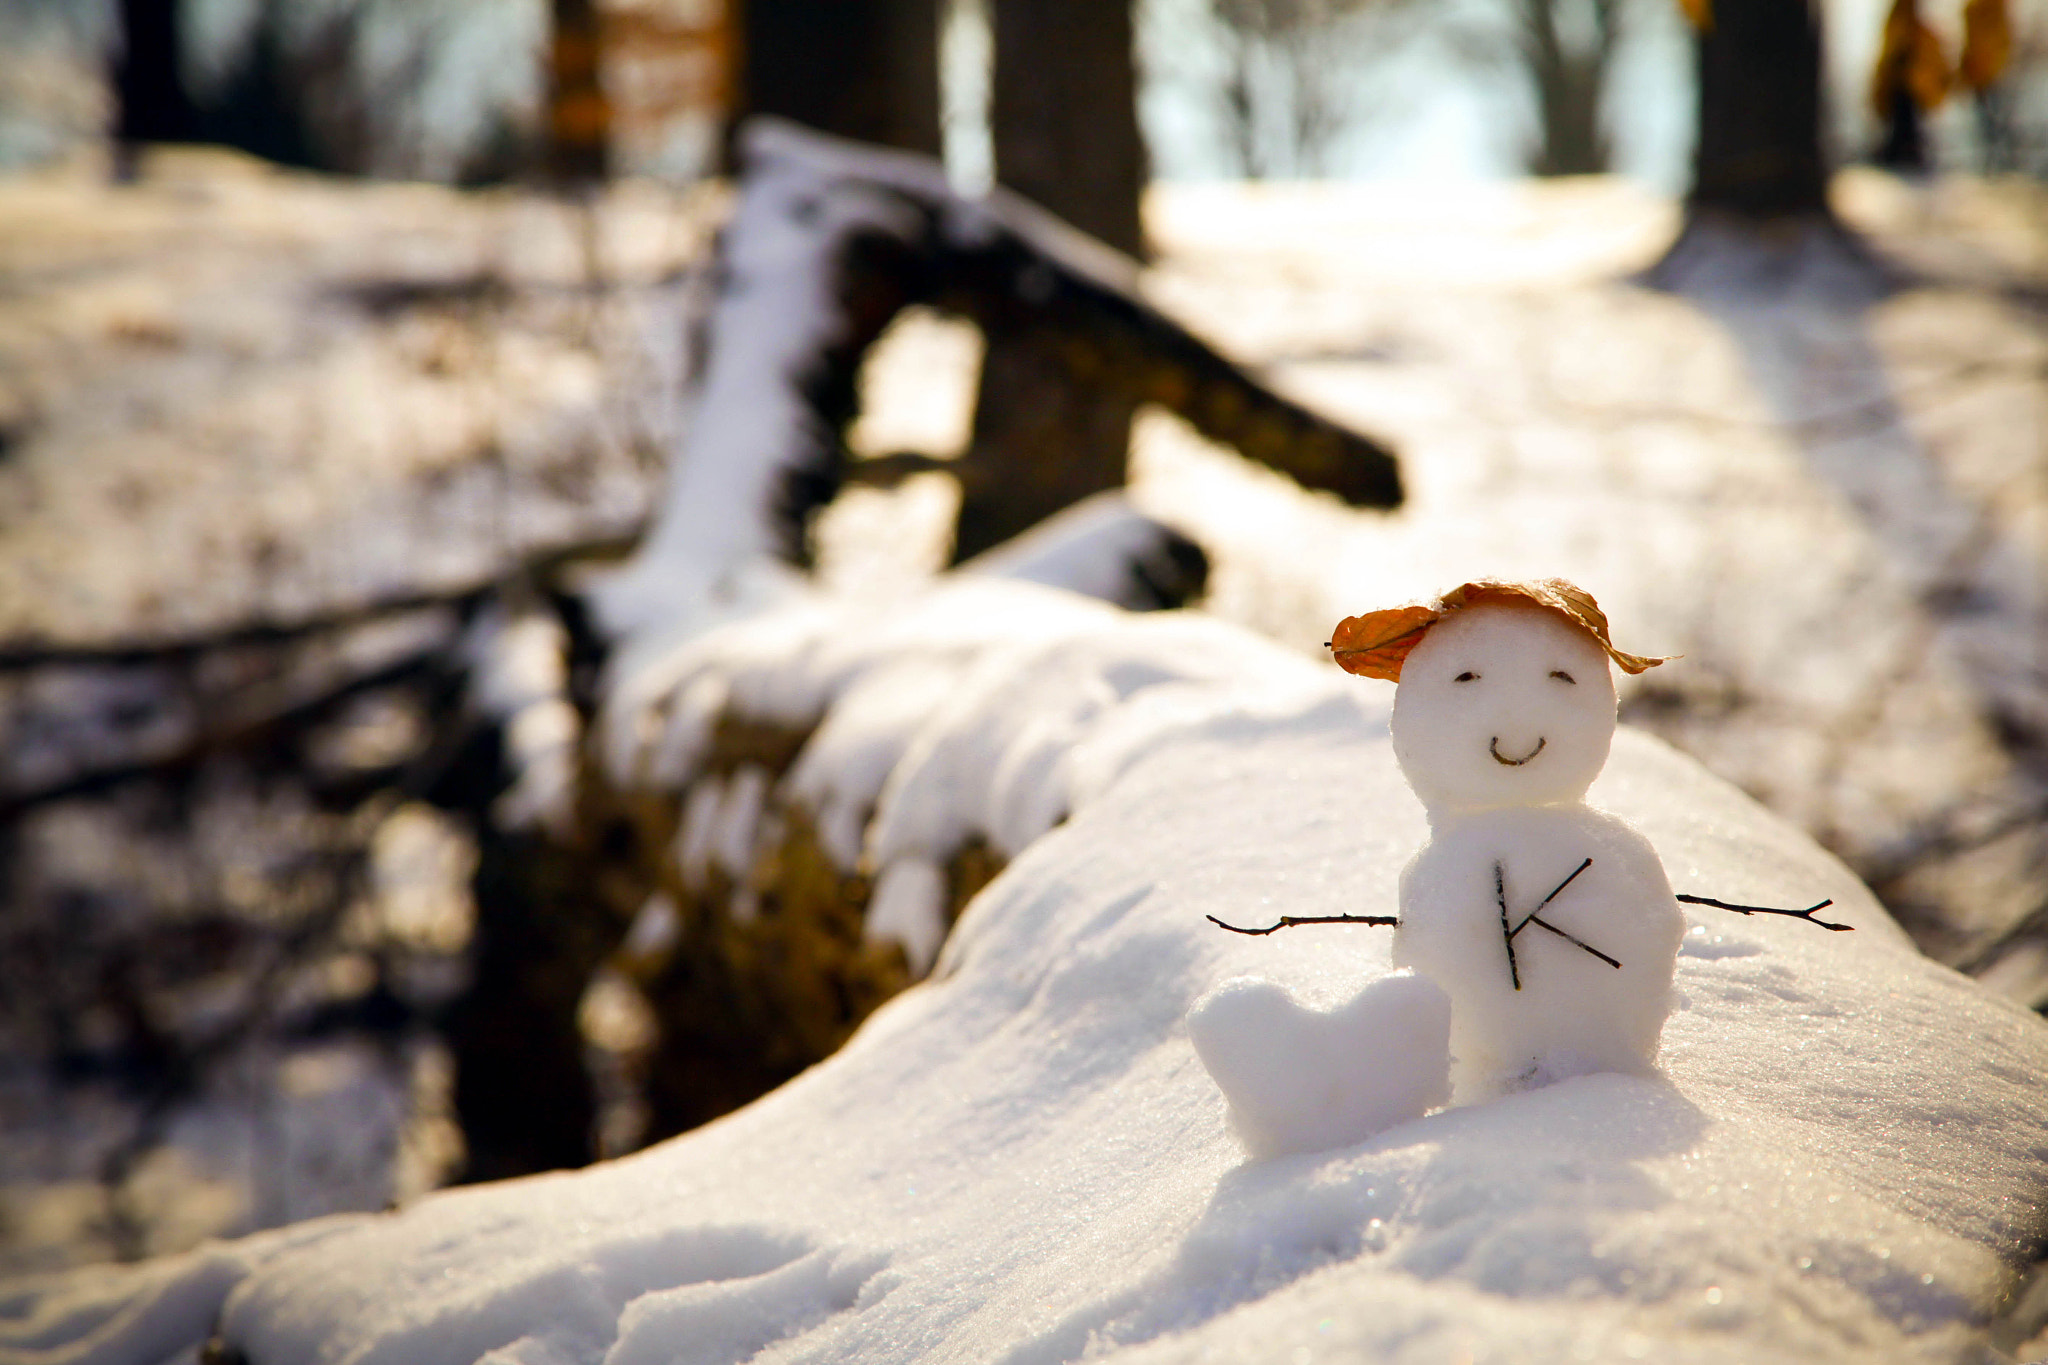 Photograph My little snowman by Kristy Yang on 500px